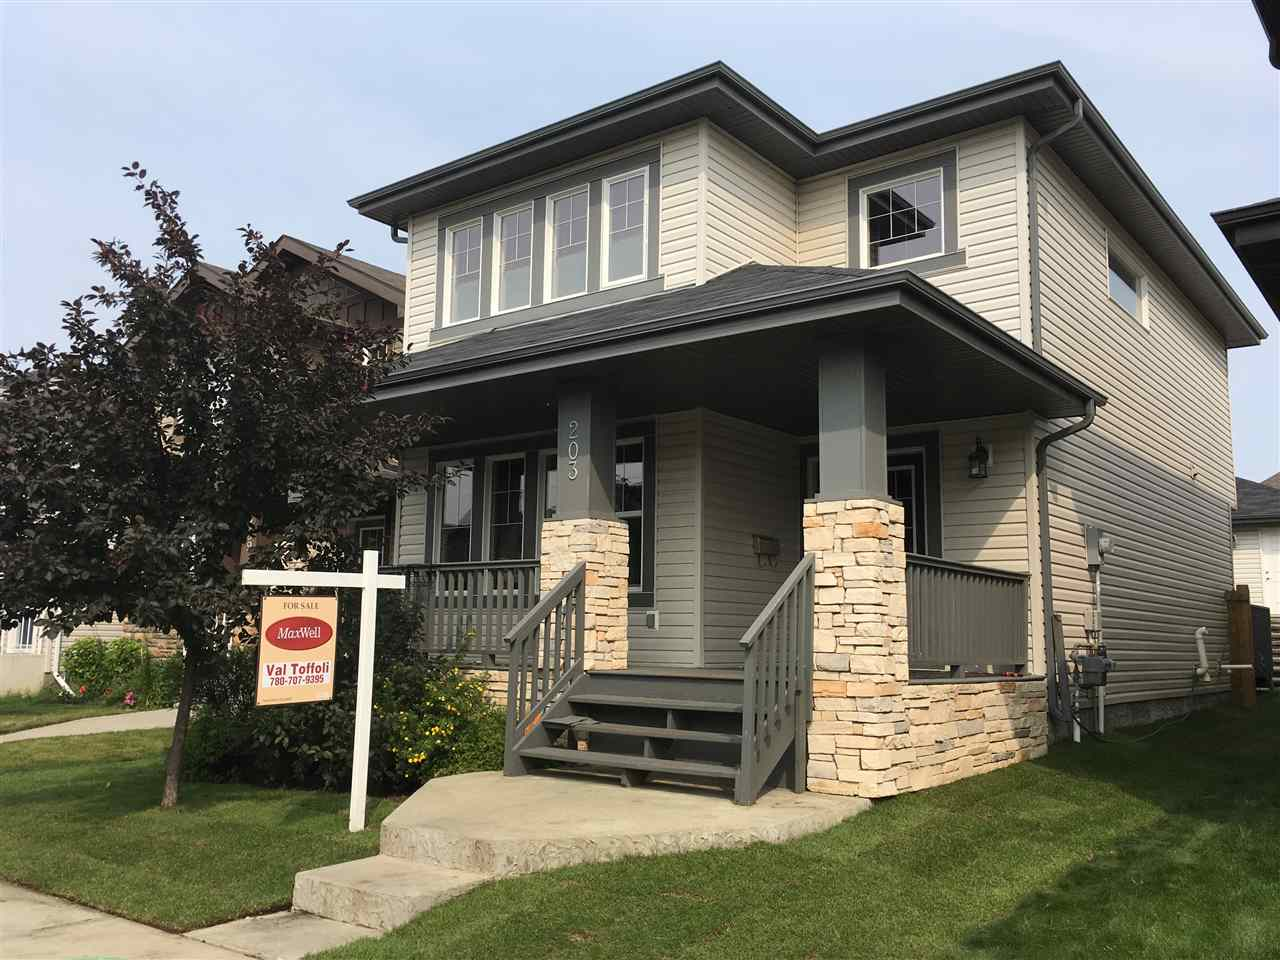 Main Photo: 203 60 Street in Edmonton: Zone 53 House for sale : MLS® # E4074709